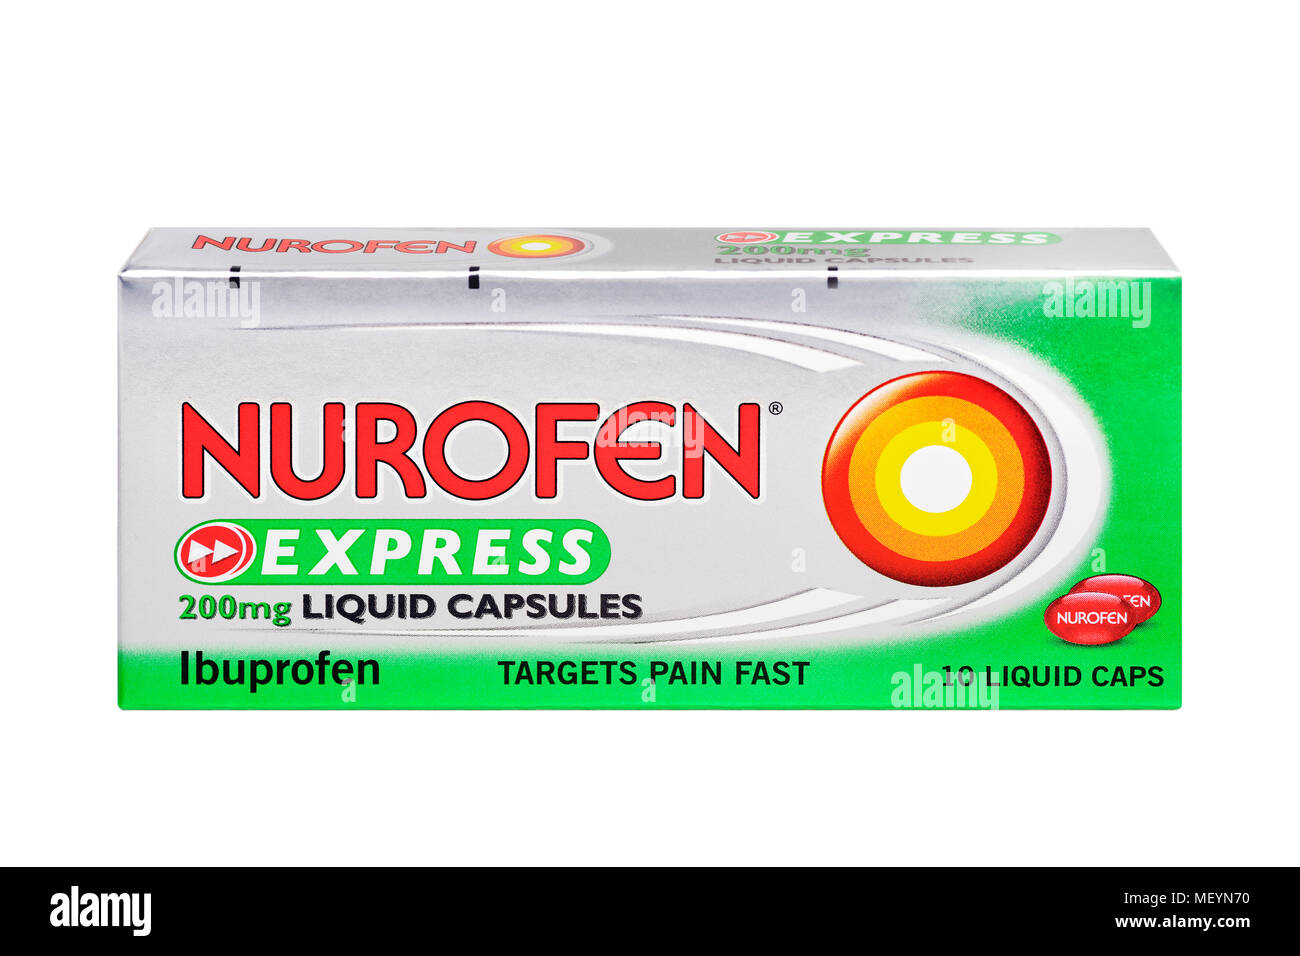 Nurofen Express Box, Cut Out Photo Stock